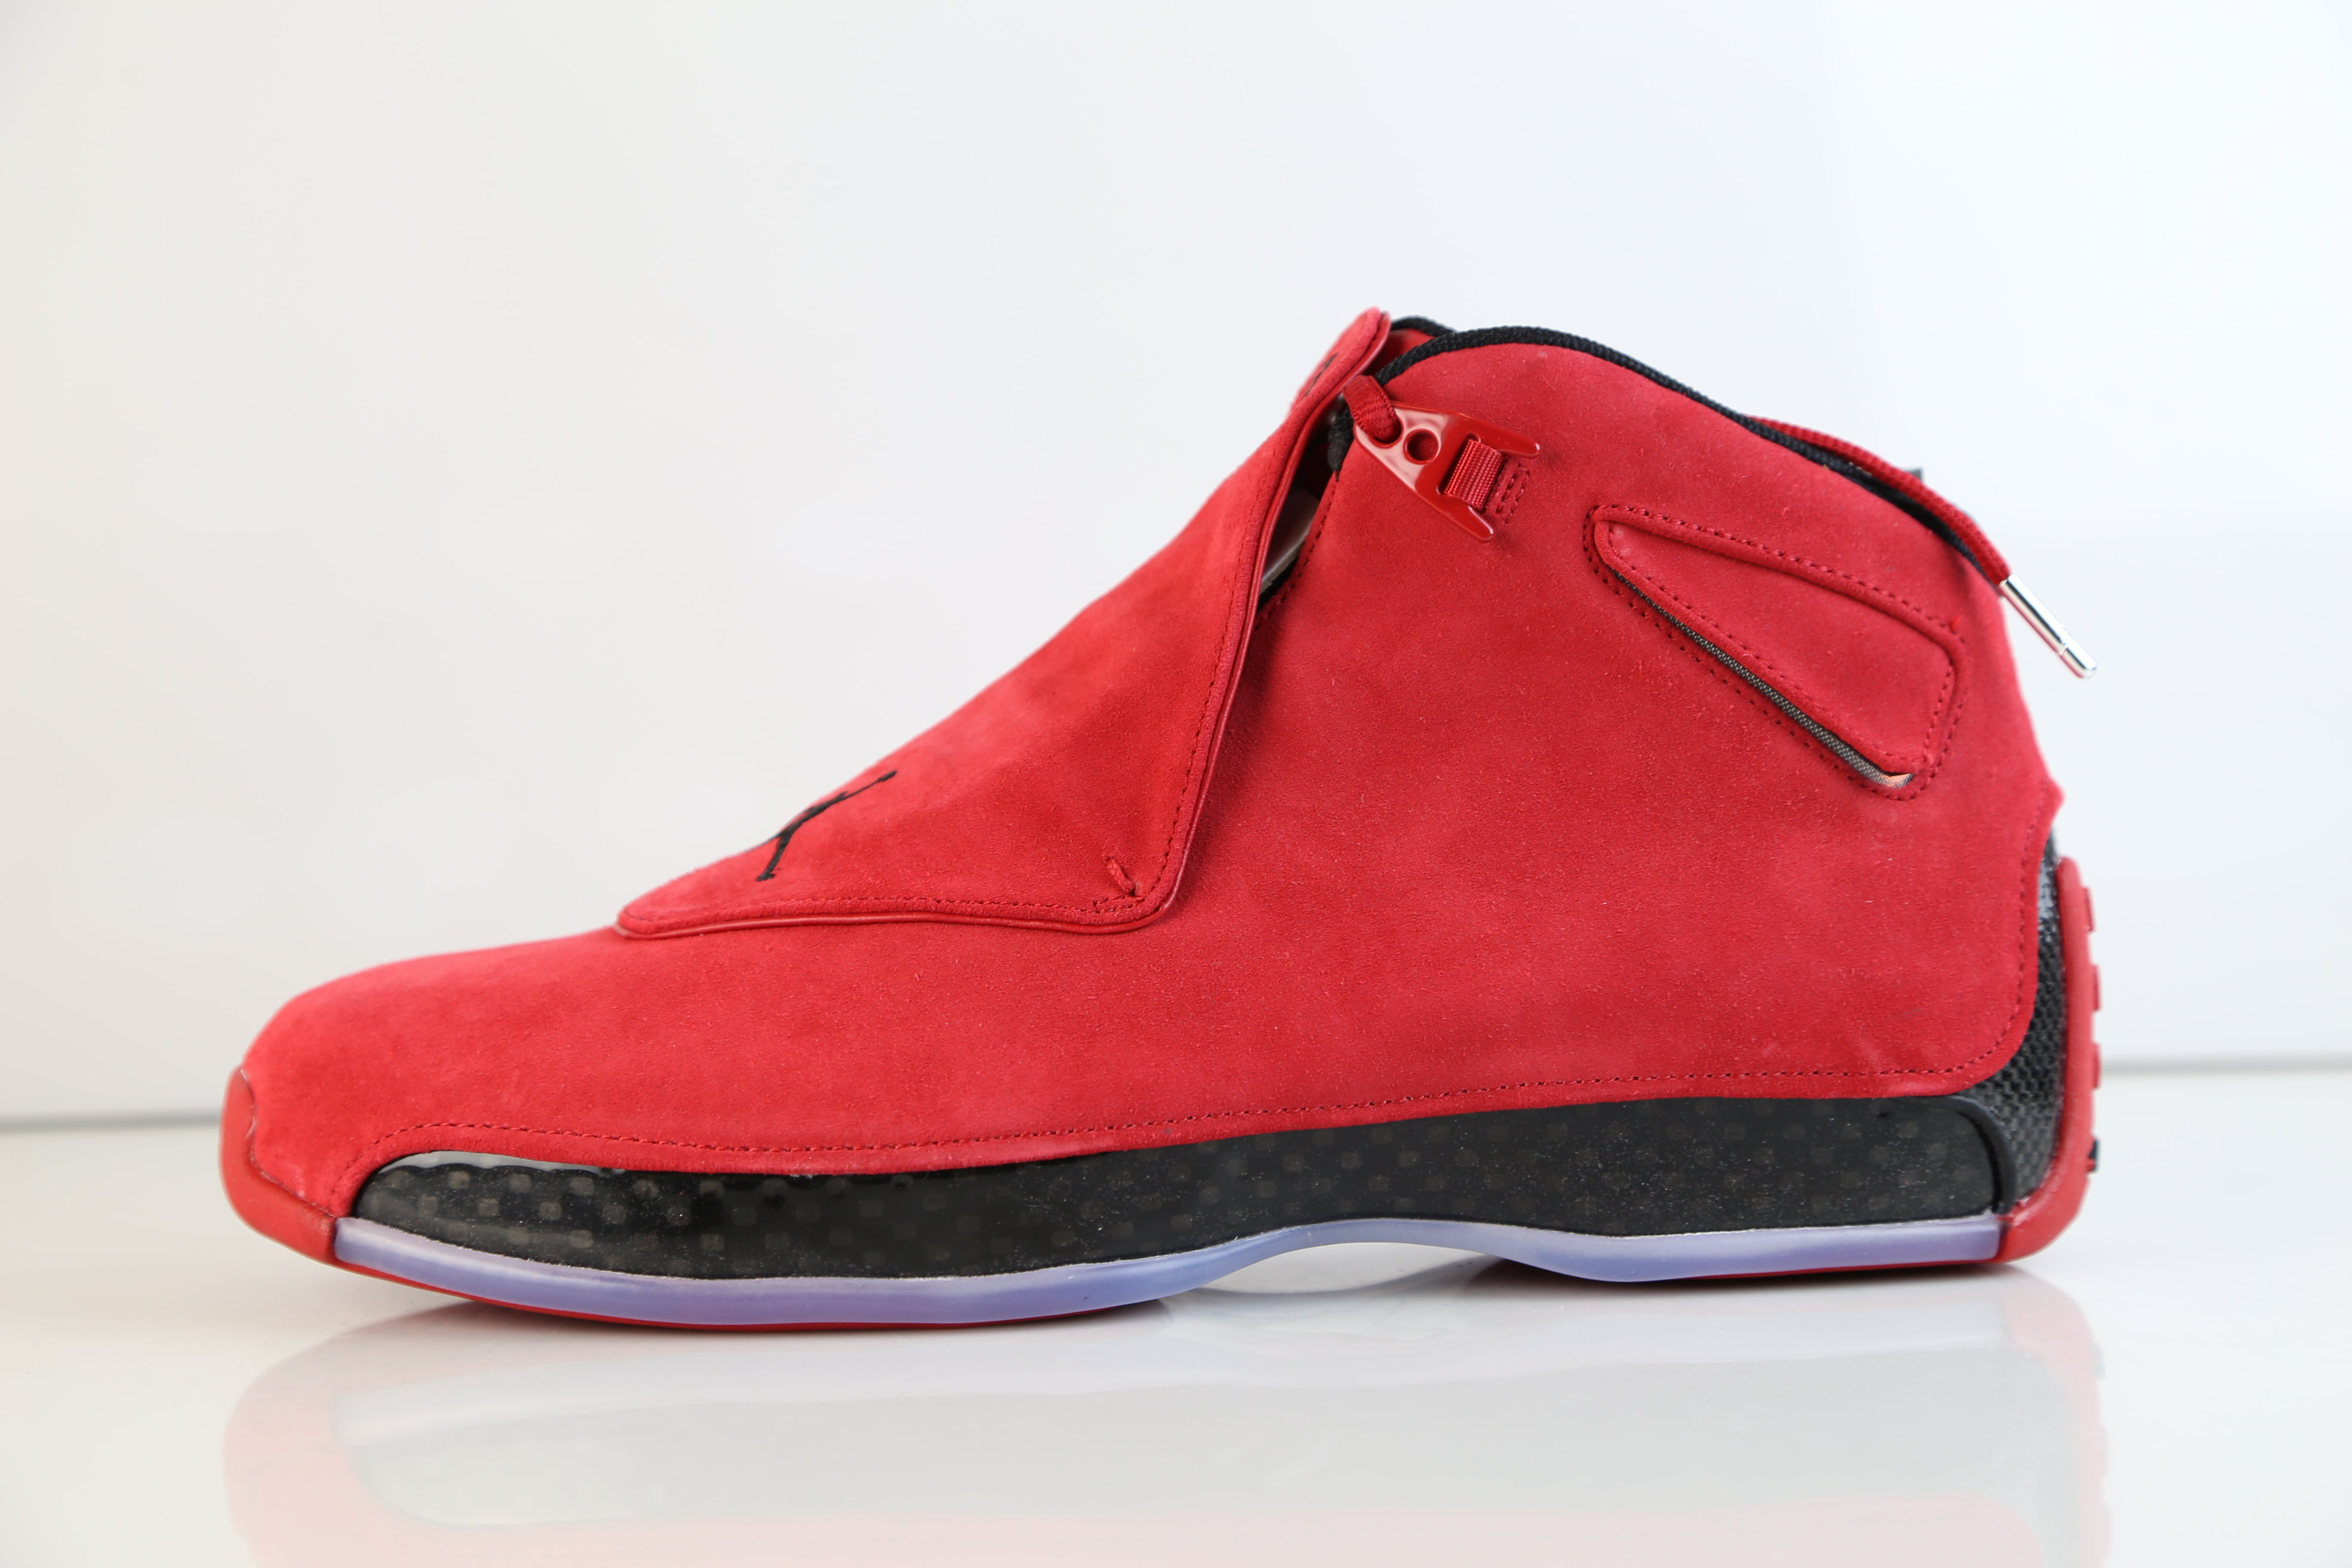 separation shoes 84753 6bd0b Nike Air Jordan Retro 18 Toro Gym Red Black 2018 AA2494-601   Zadehkicks